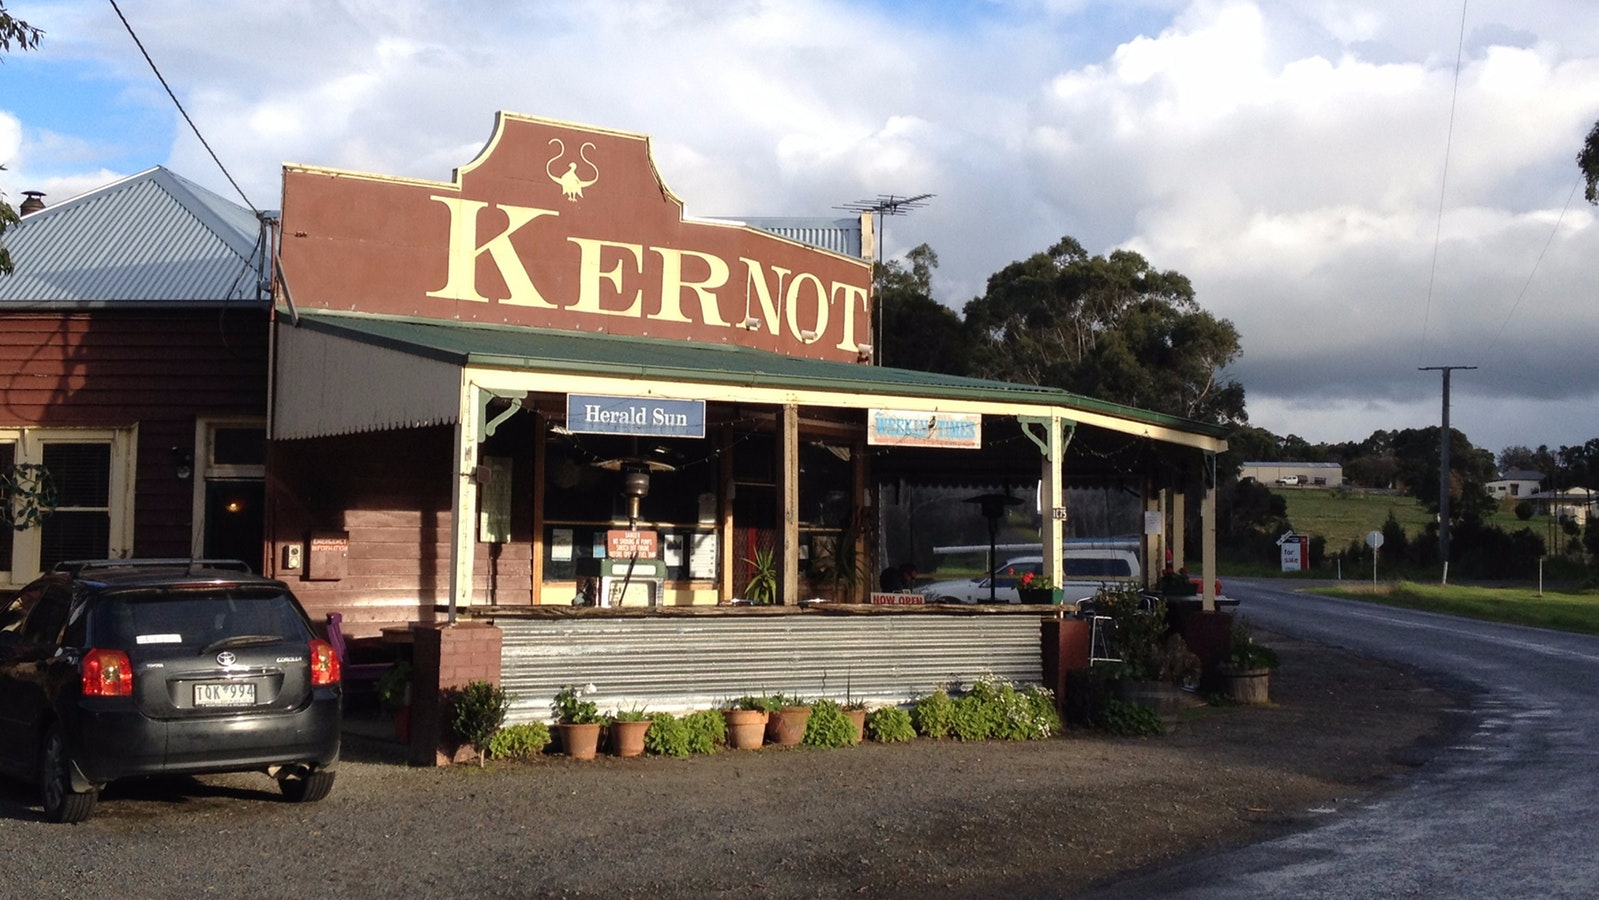 Frontage of Kernot Store